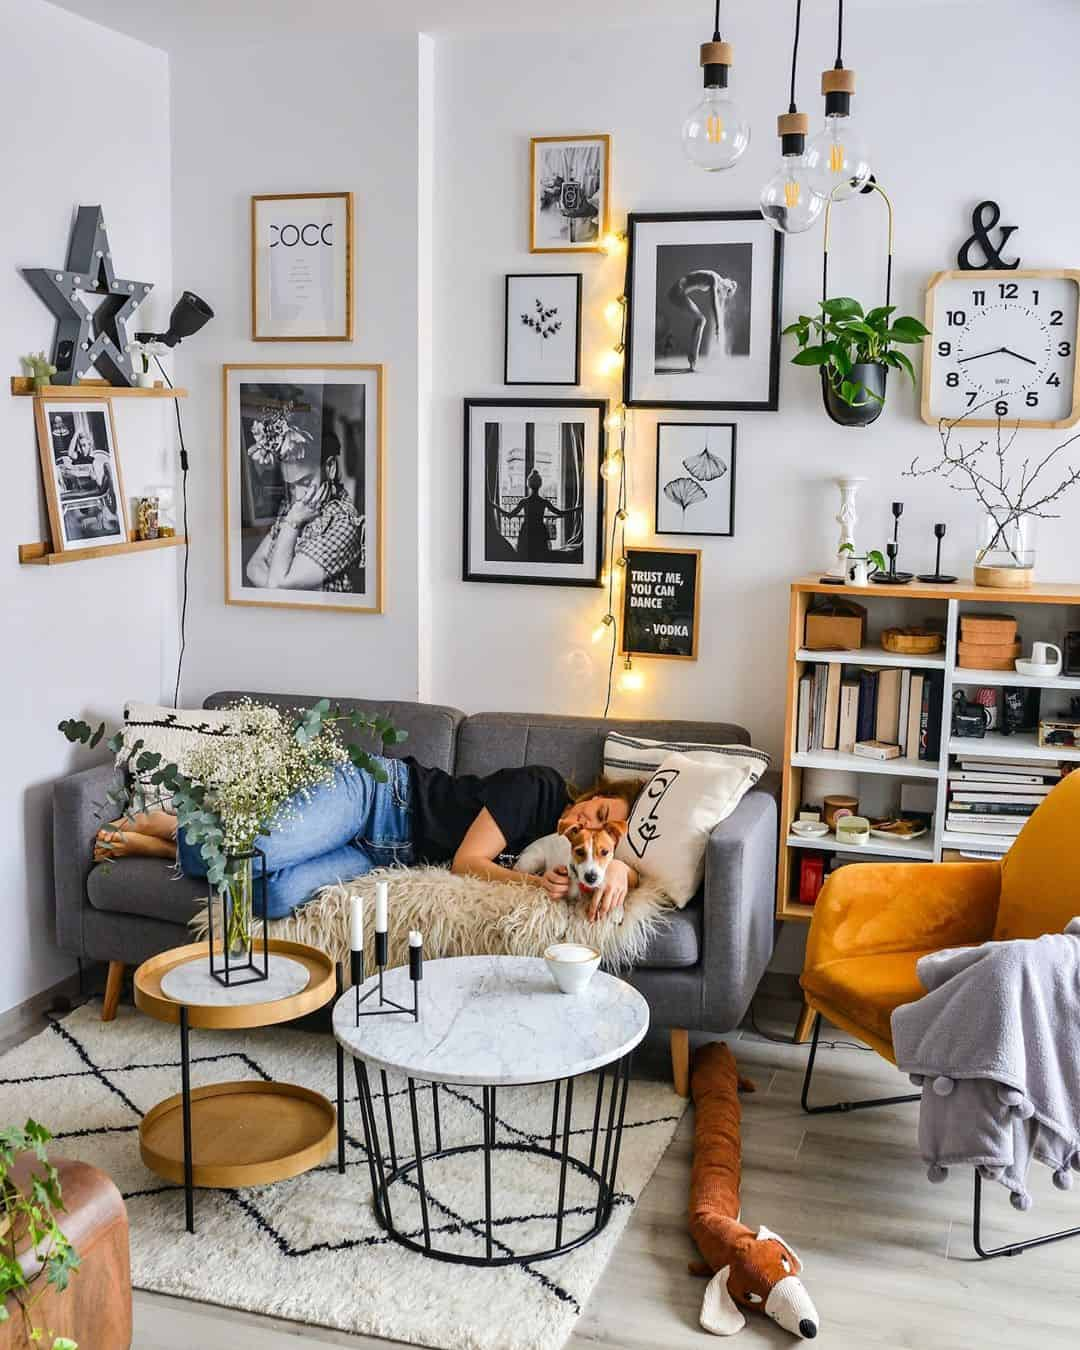 Home Design Color Ideas: Living Room Trends 2021: 12 Fresh And Unique Ideas To Try